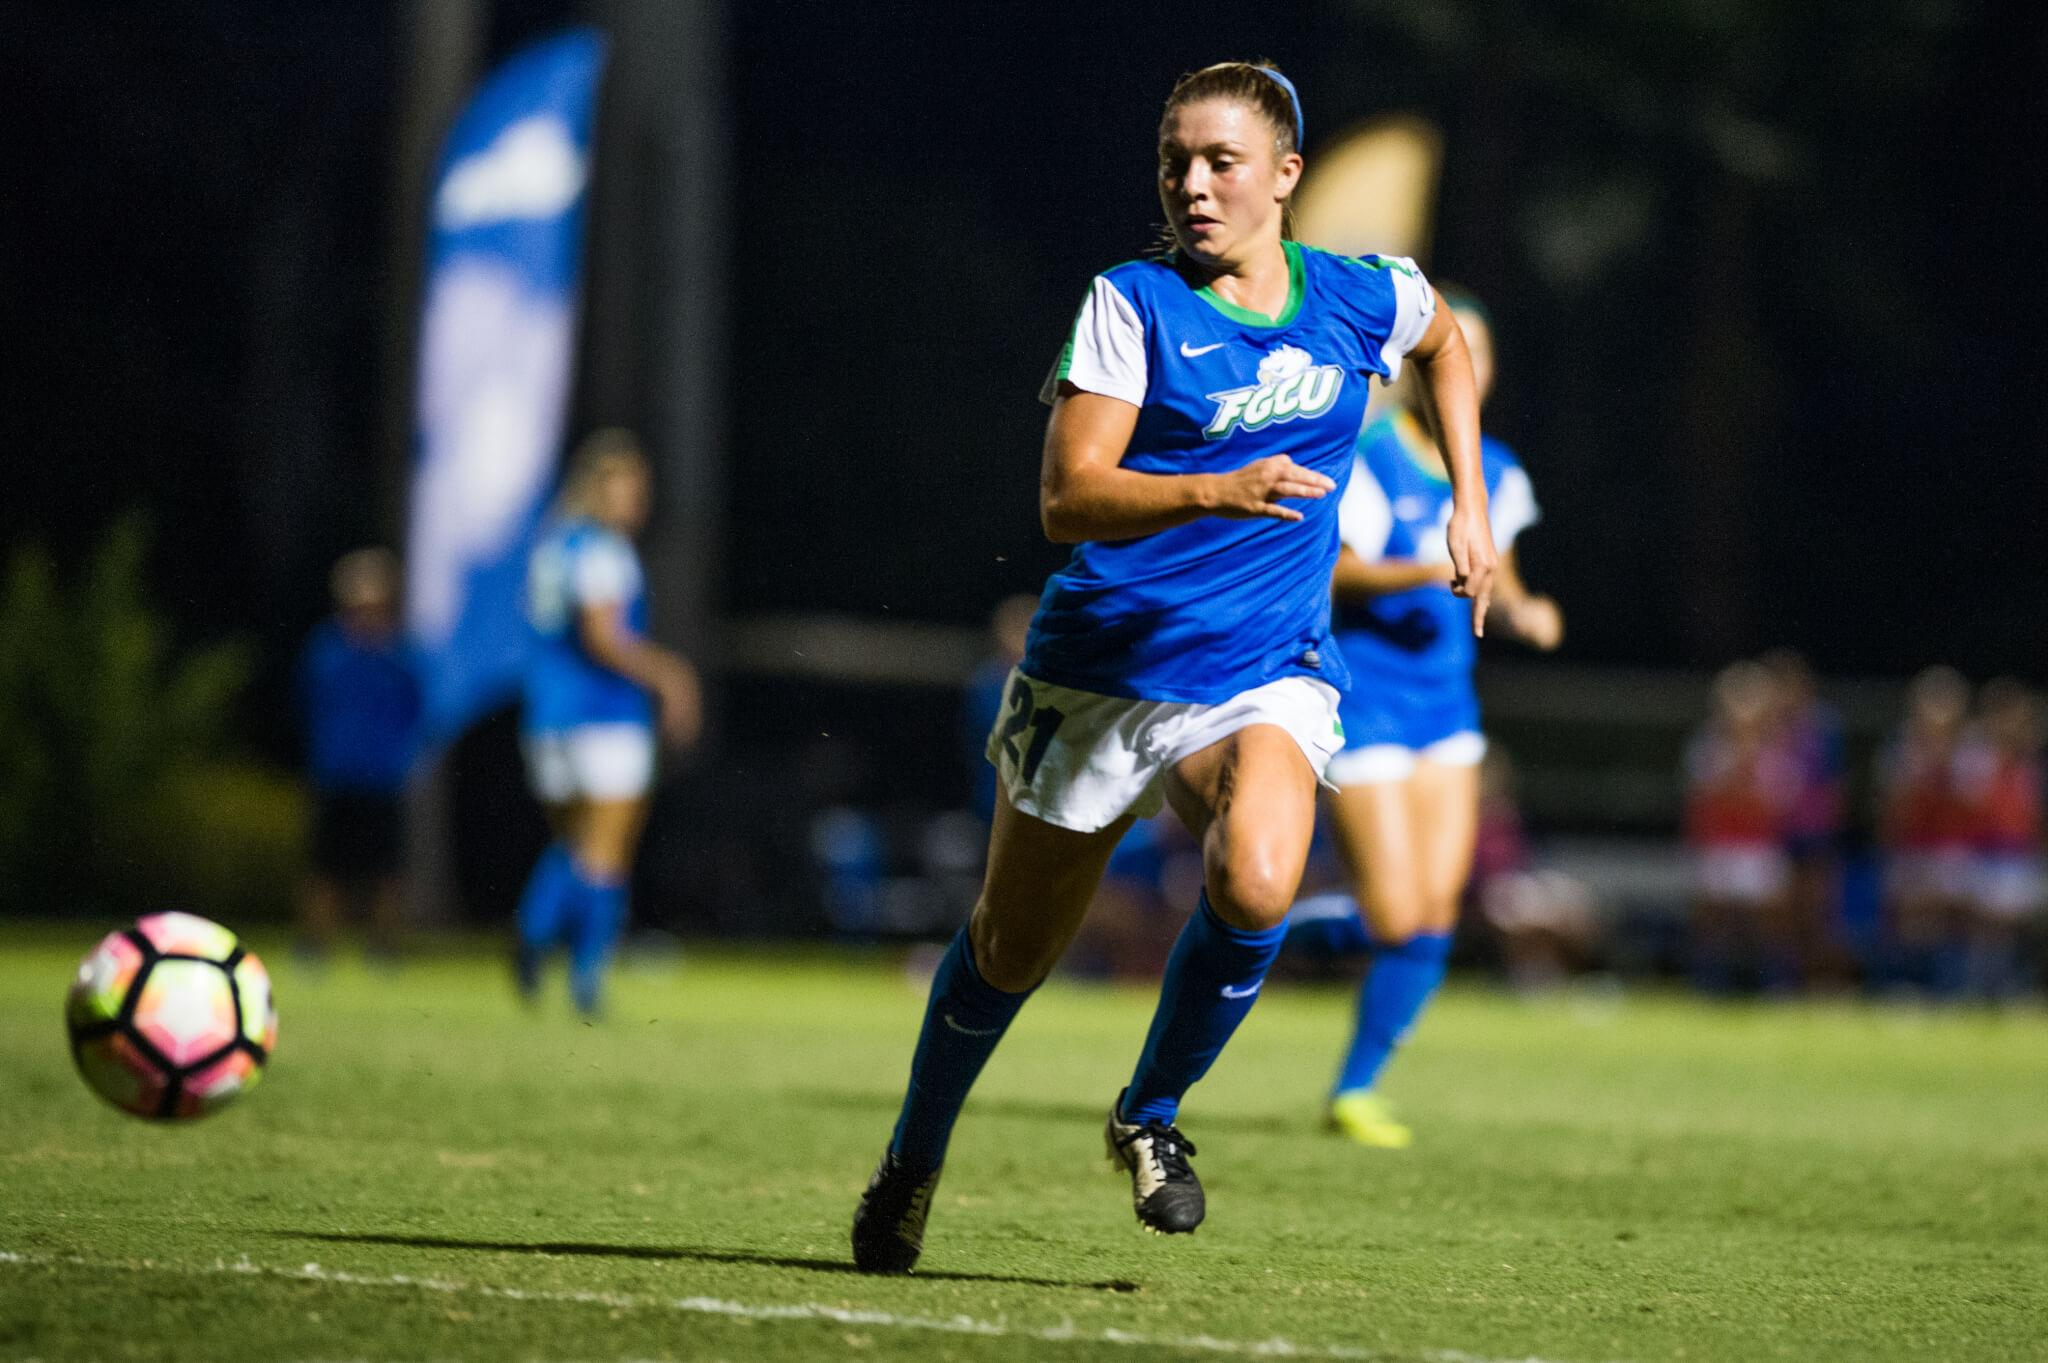 FGCU women's soccer books a spot in the ASUN final with victory over Kennesaw State